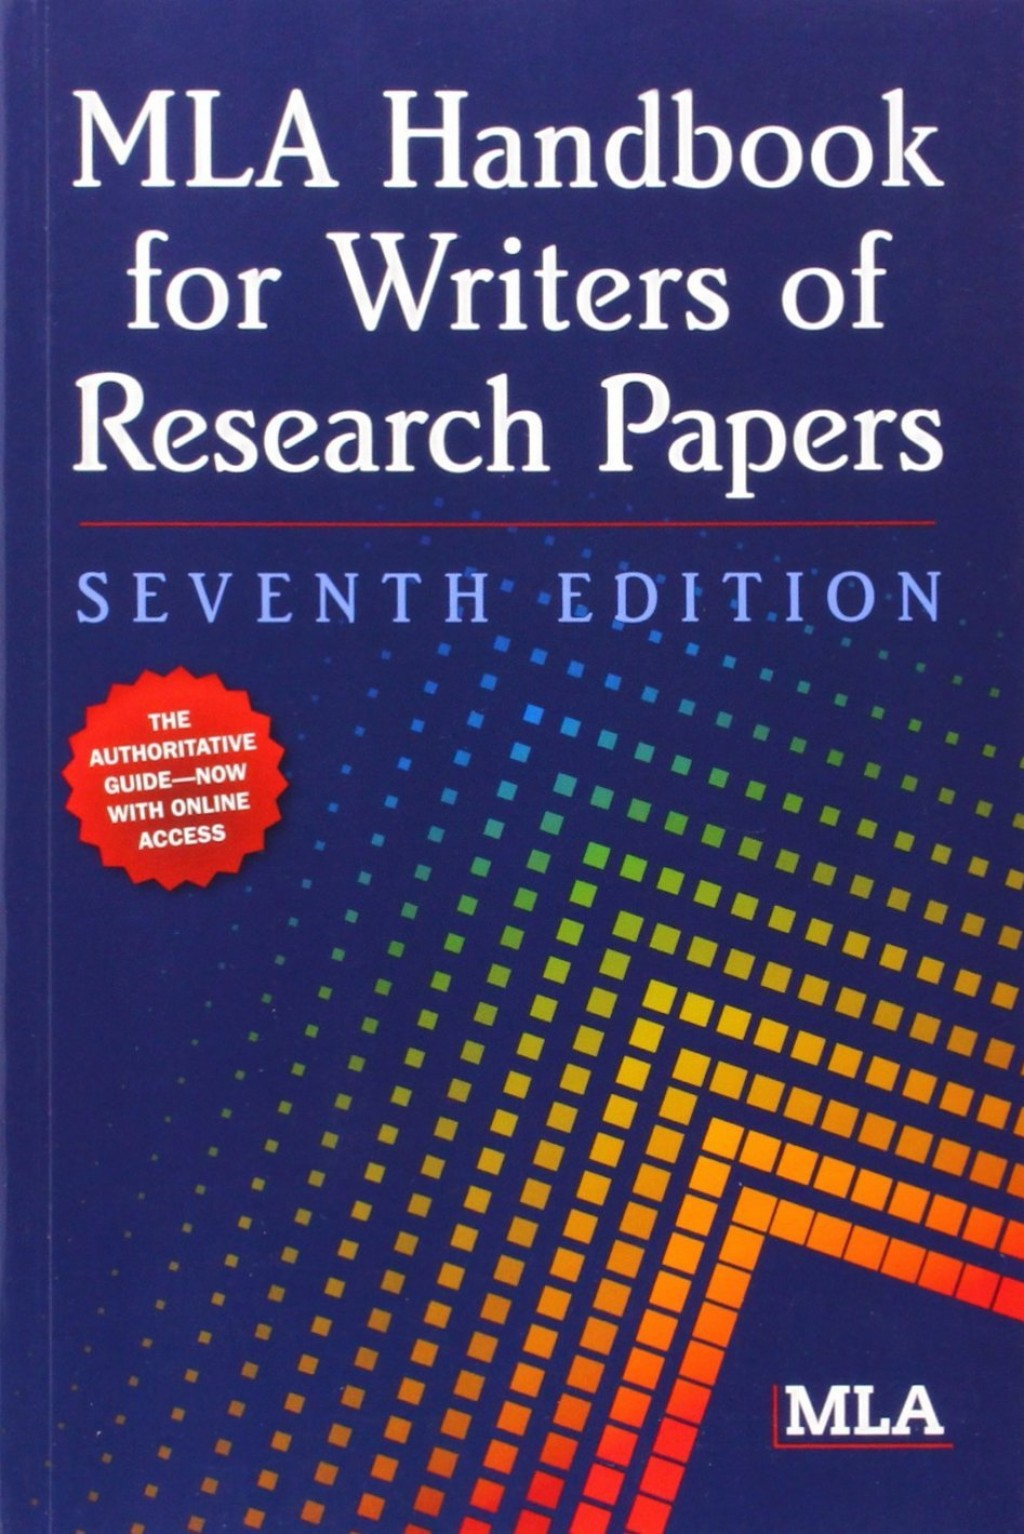 001 Mla Handbook For Writers Of Research Paper Impressive Papers 7th Edition 8th Pdf Free Download Joseph Gibaldi 6th Large